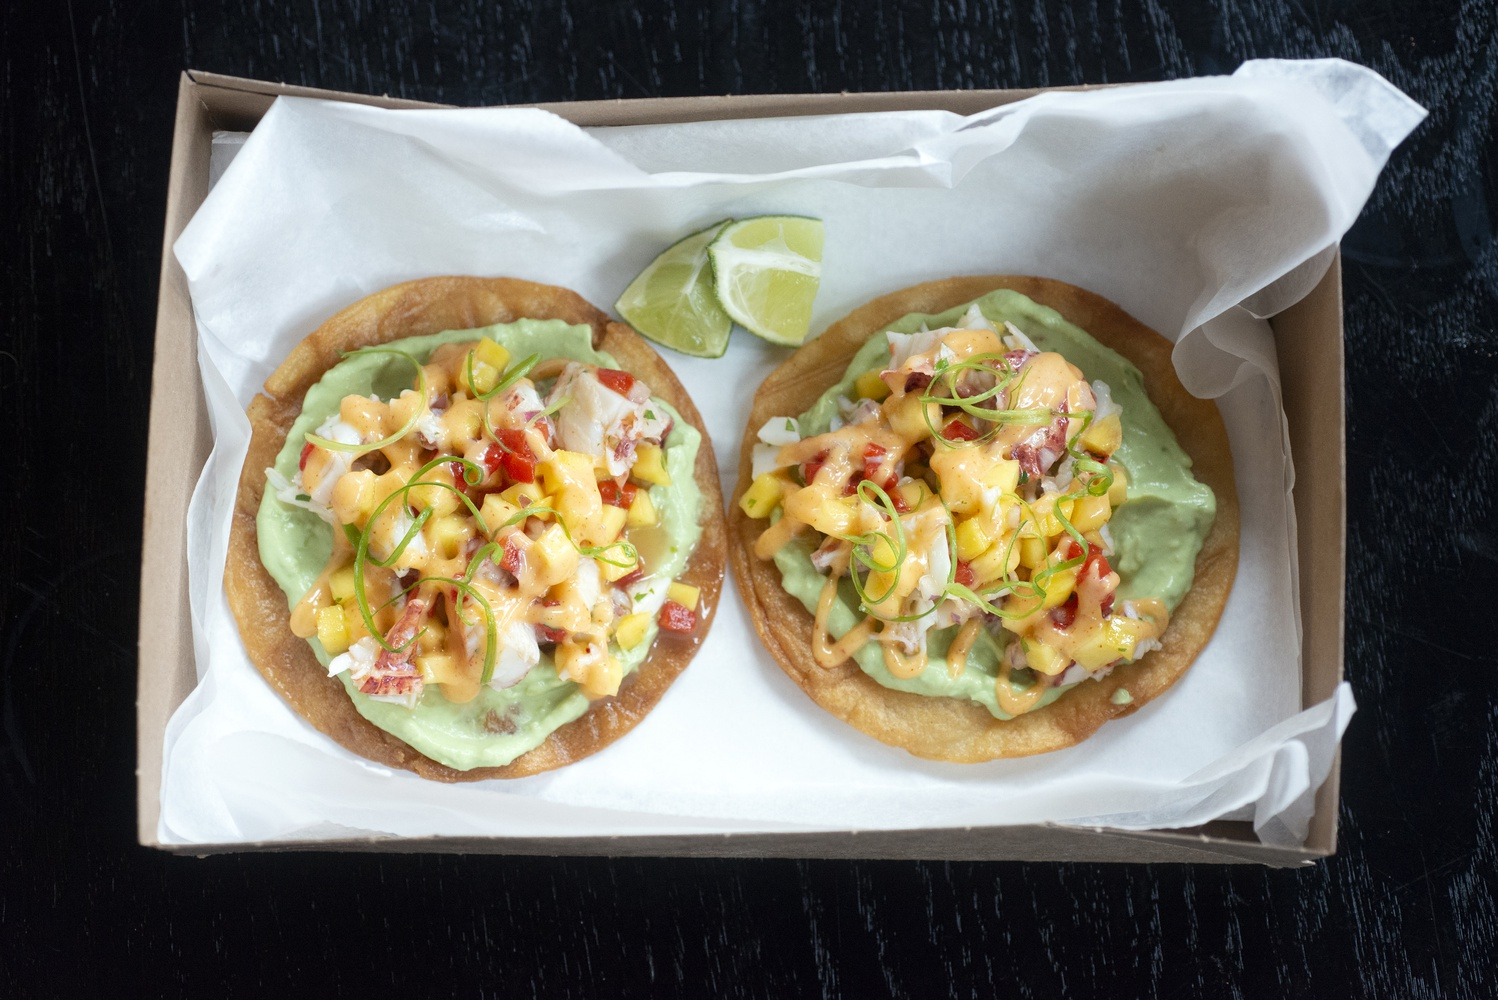 The Lobster Tostada is one of the menu items at Chef Jeremy Sewall's La Ventana.